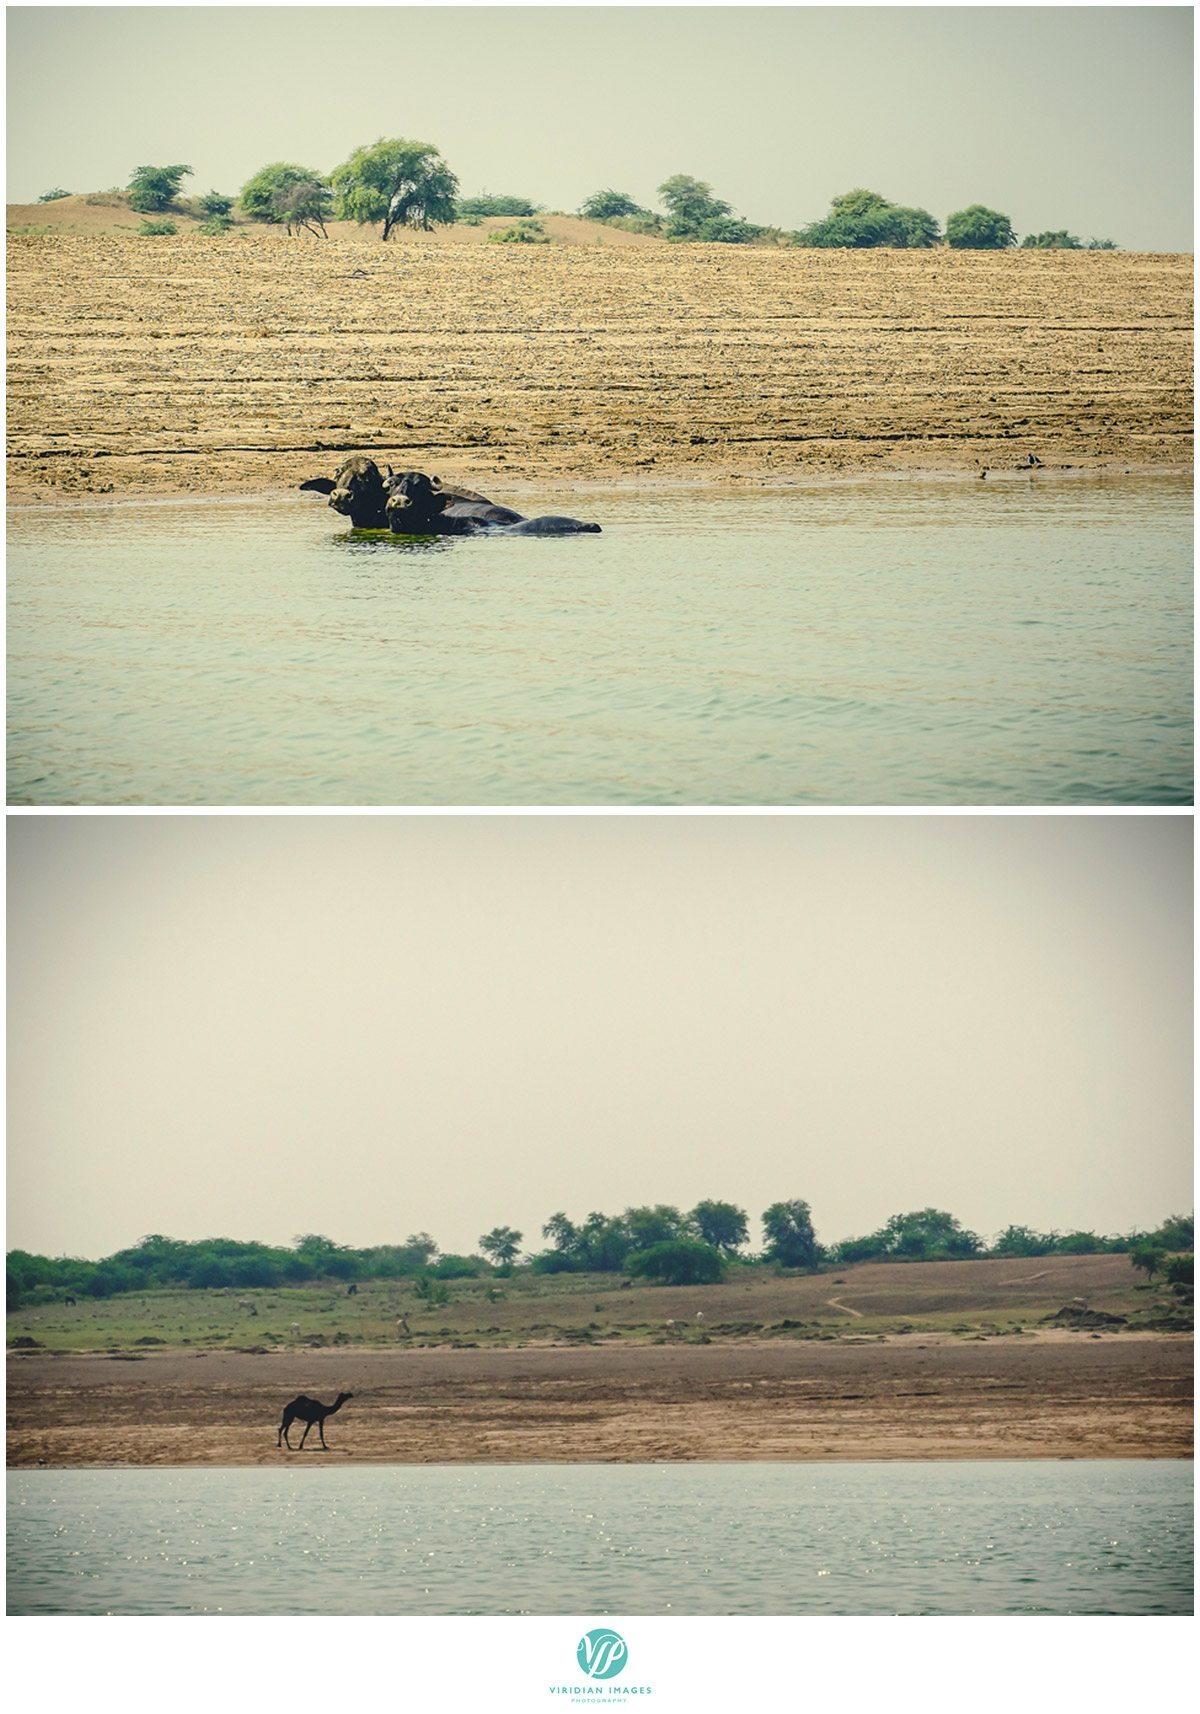 India_Chambal_Safari_Viridian_Images_photo_7